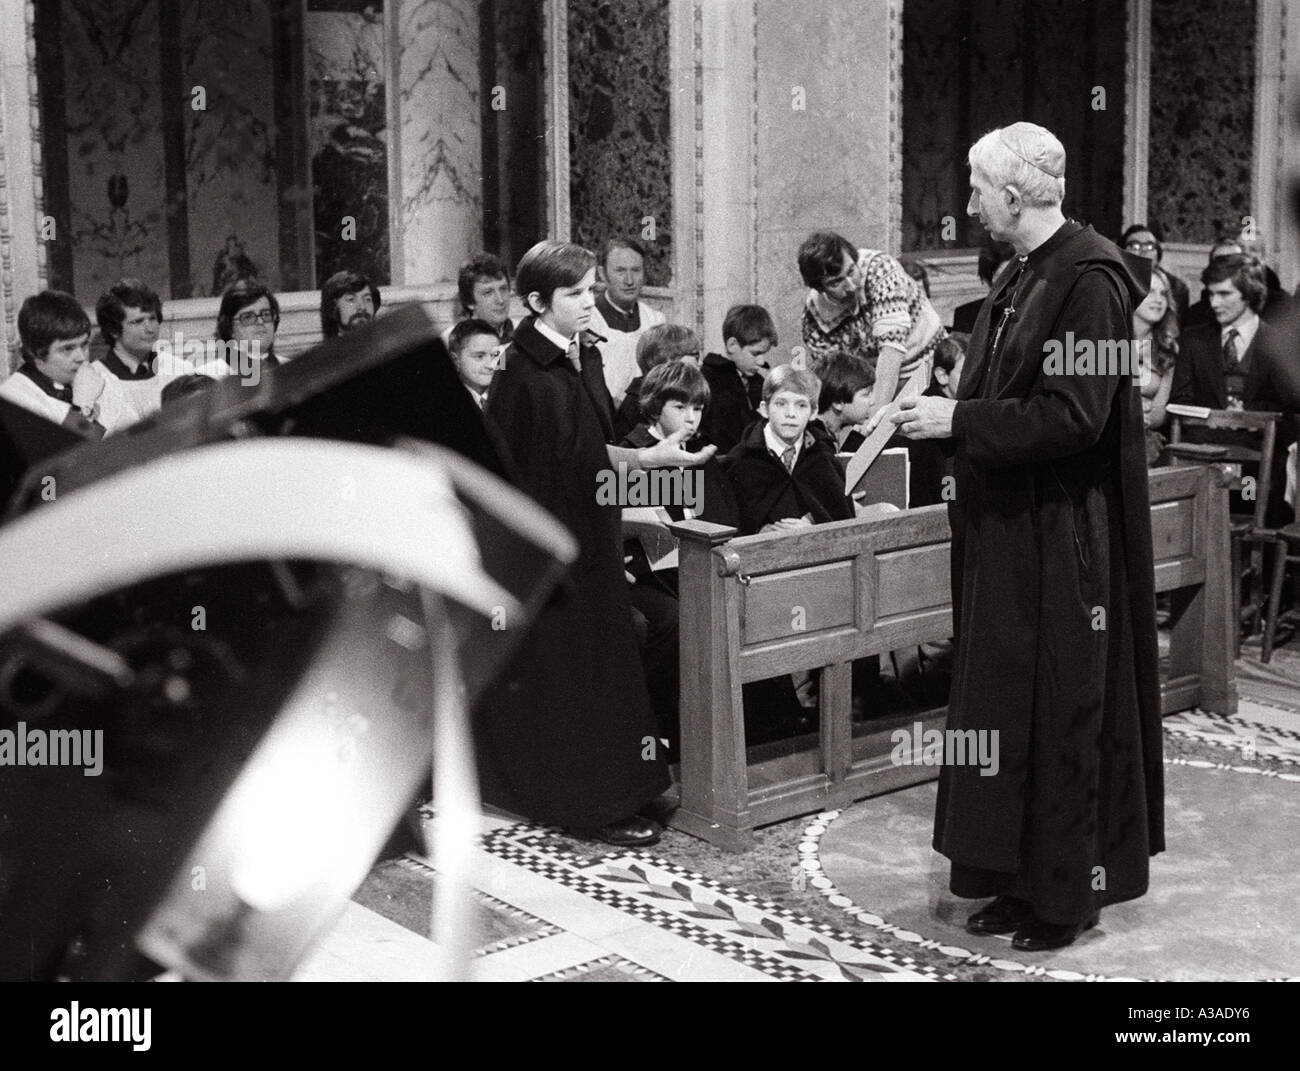 Cardinal Basil Hume Archbishop of Westminster looks on at Relersal for TV production in Cathedral - Stock Image